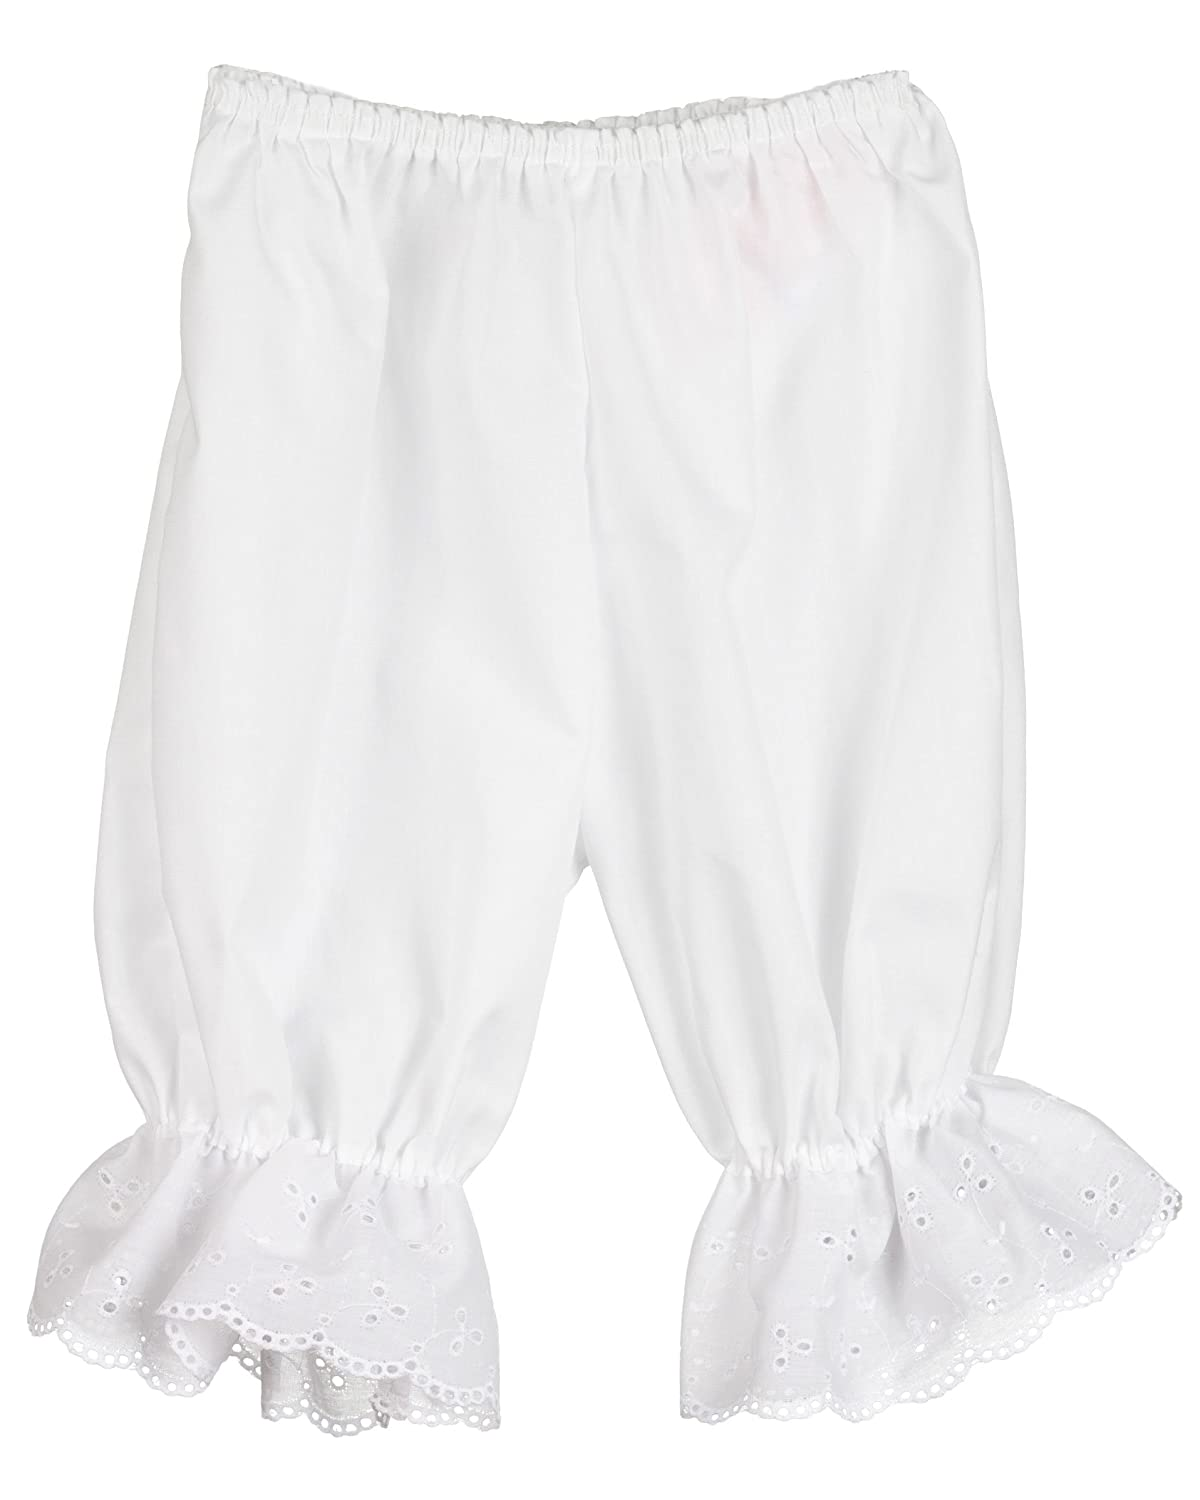 Little Zazzy Baby Girls White Pantaloon Pettipants Bloomer Under-pants 623501-WHA